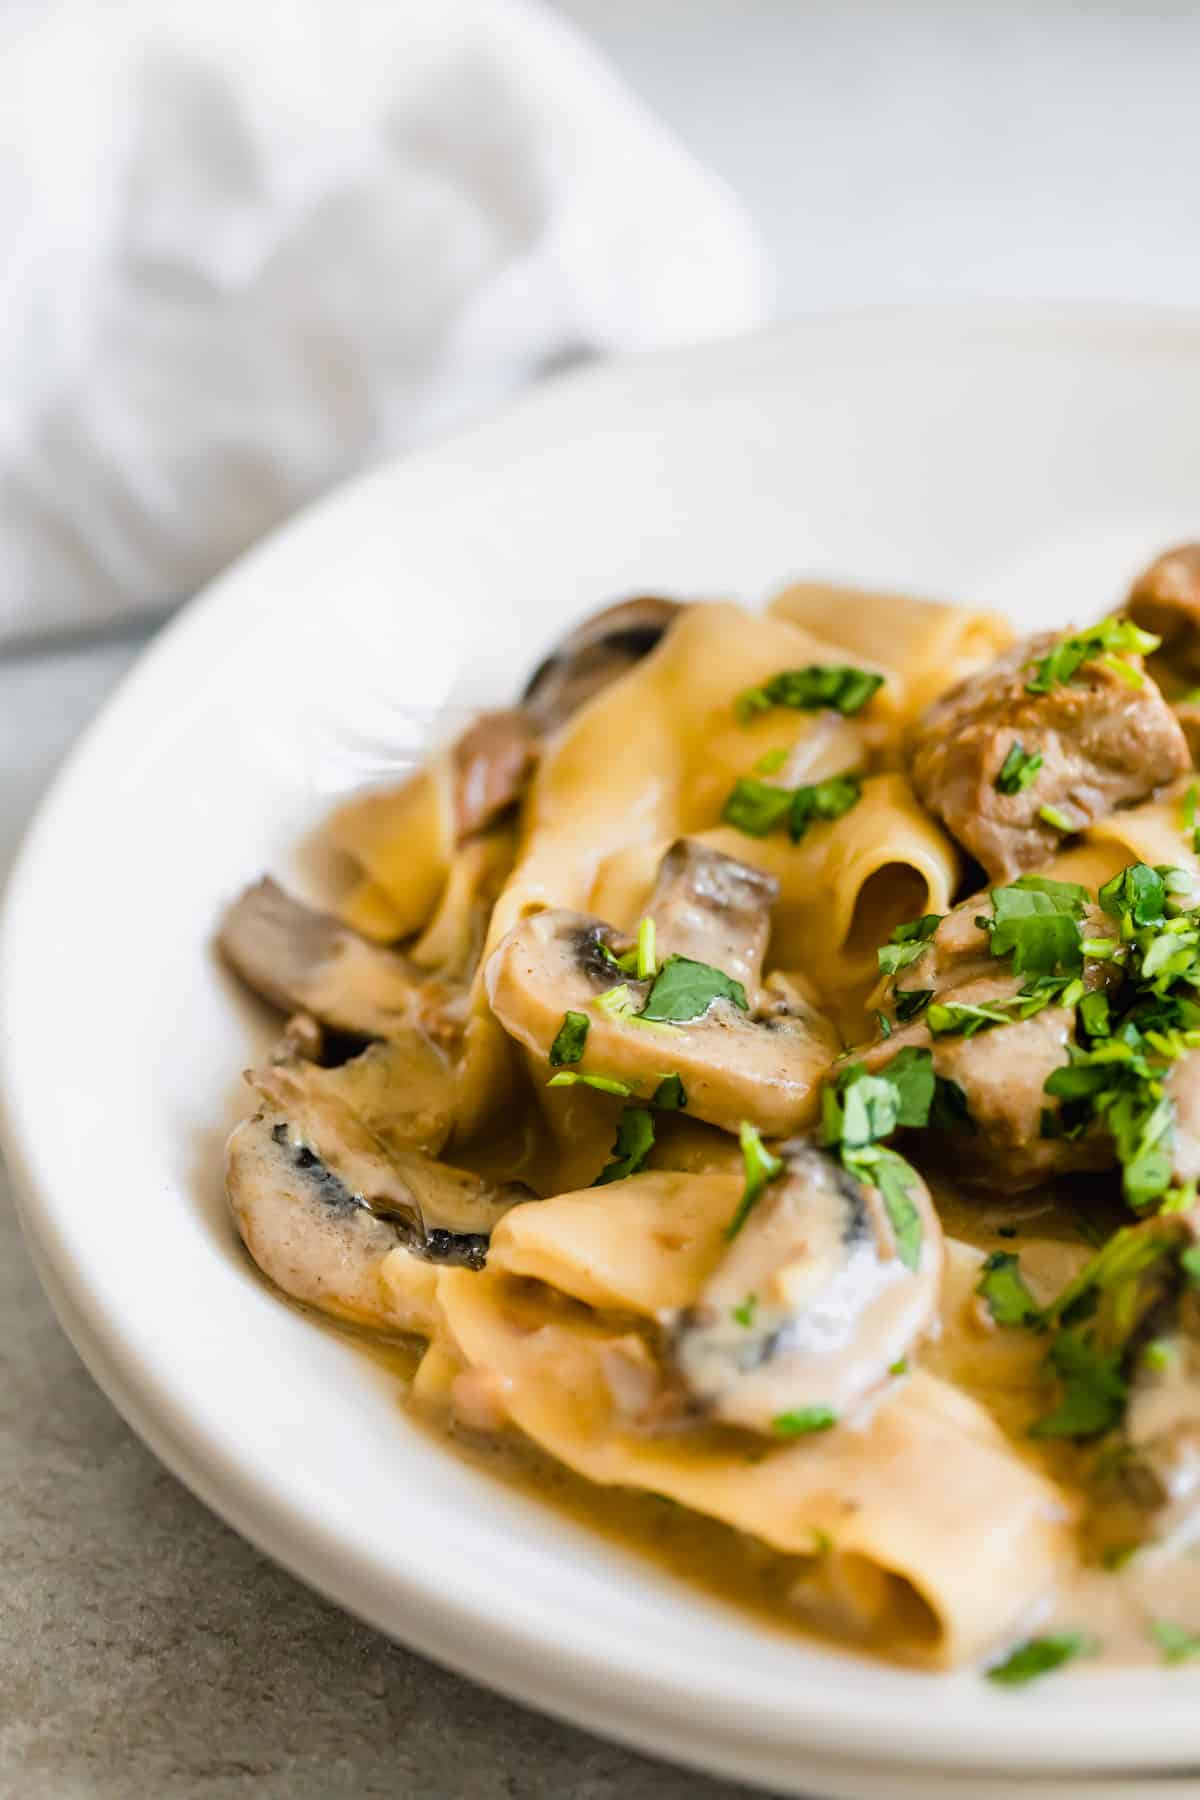 A Close-Up View of Instant Pot Beef Stroganoff on a Plate